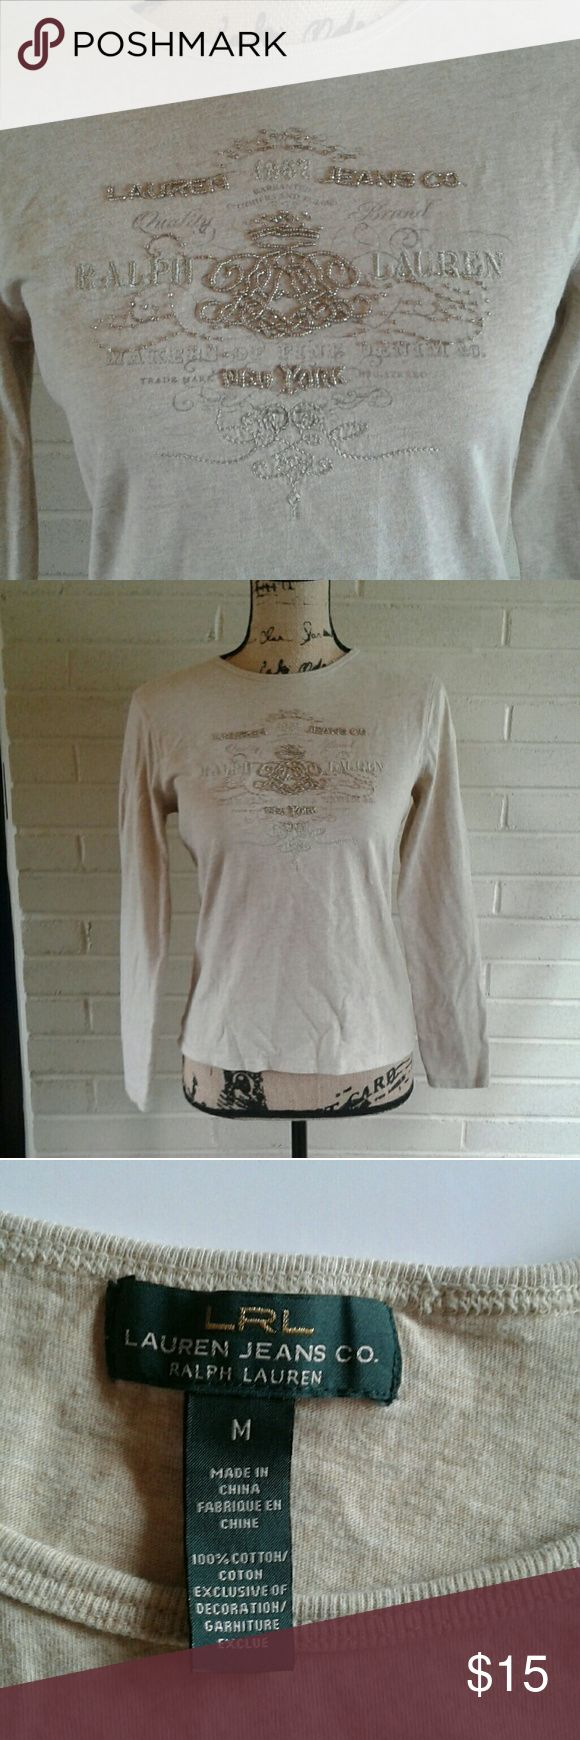 Ralph Lauren long sleeve tee Cream color with embellished with gold beading front long sleeve tee 100% cotton Ralph Lauren Tops Tees - Long Sleeve